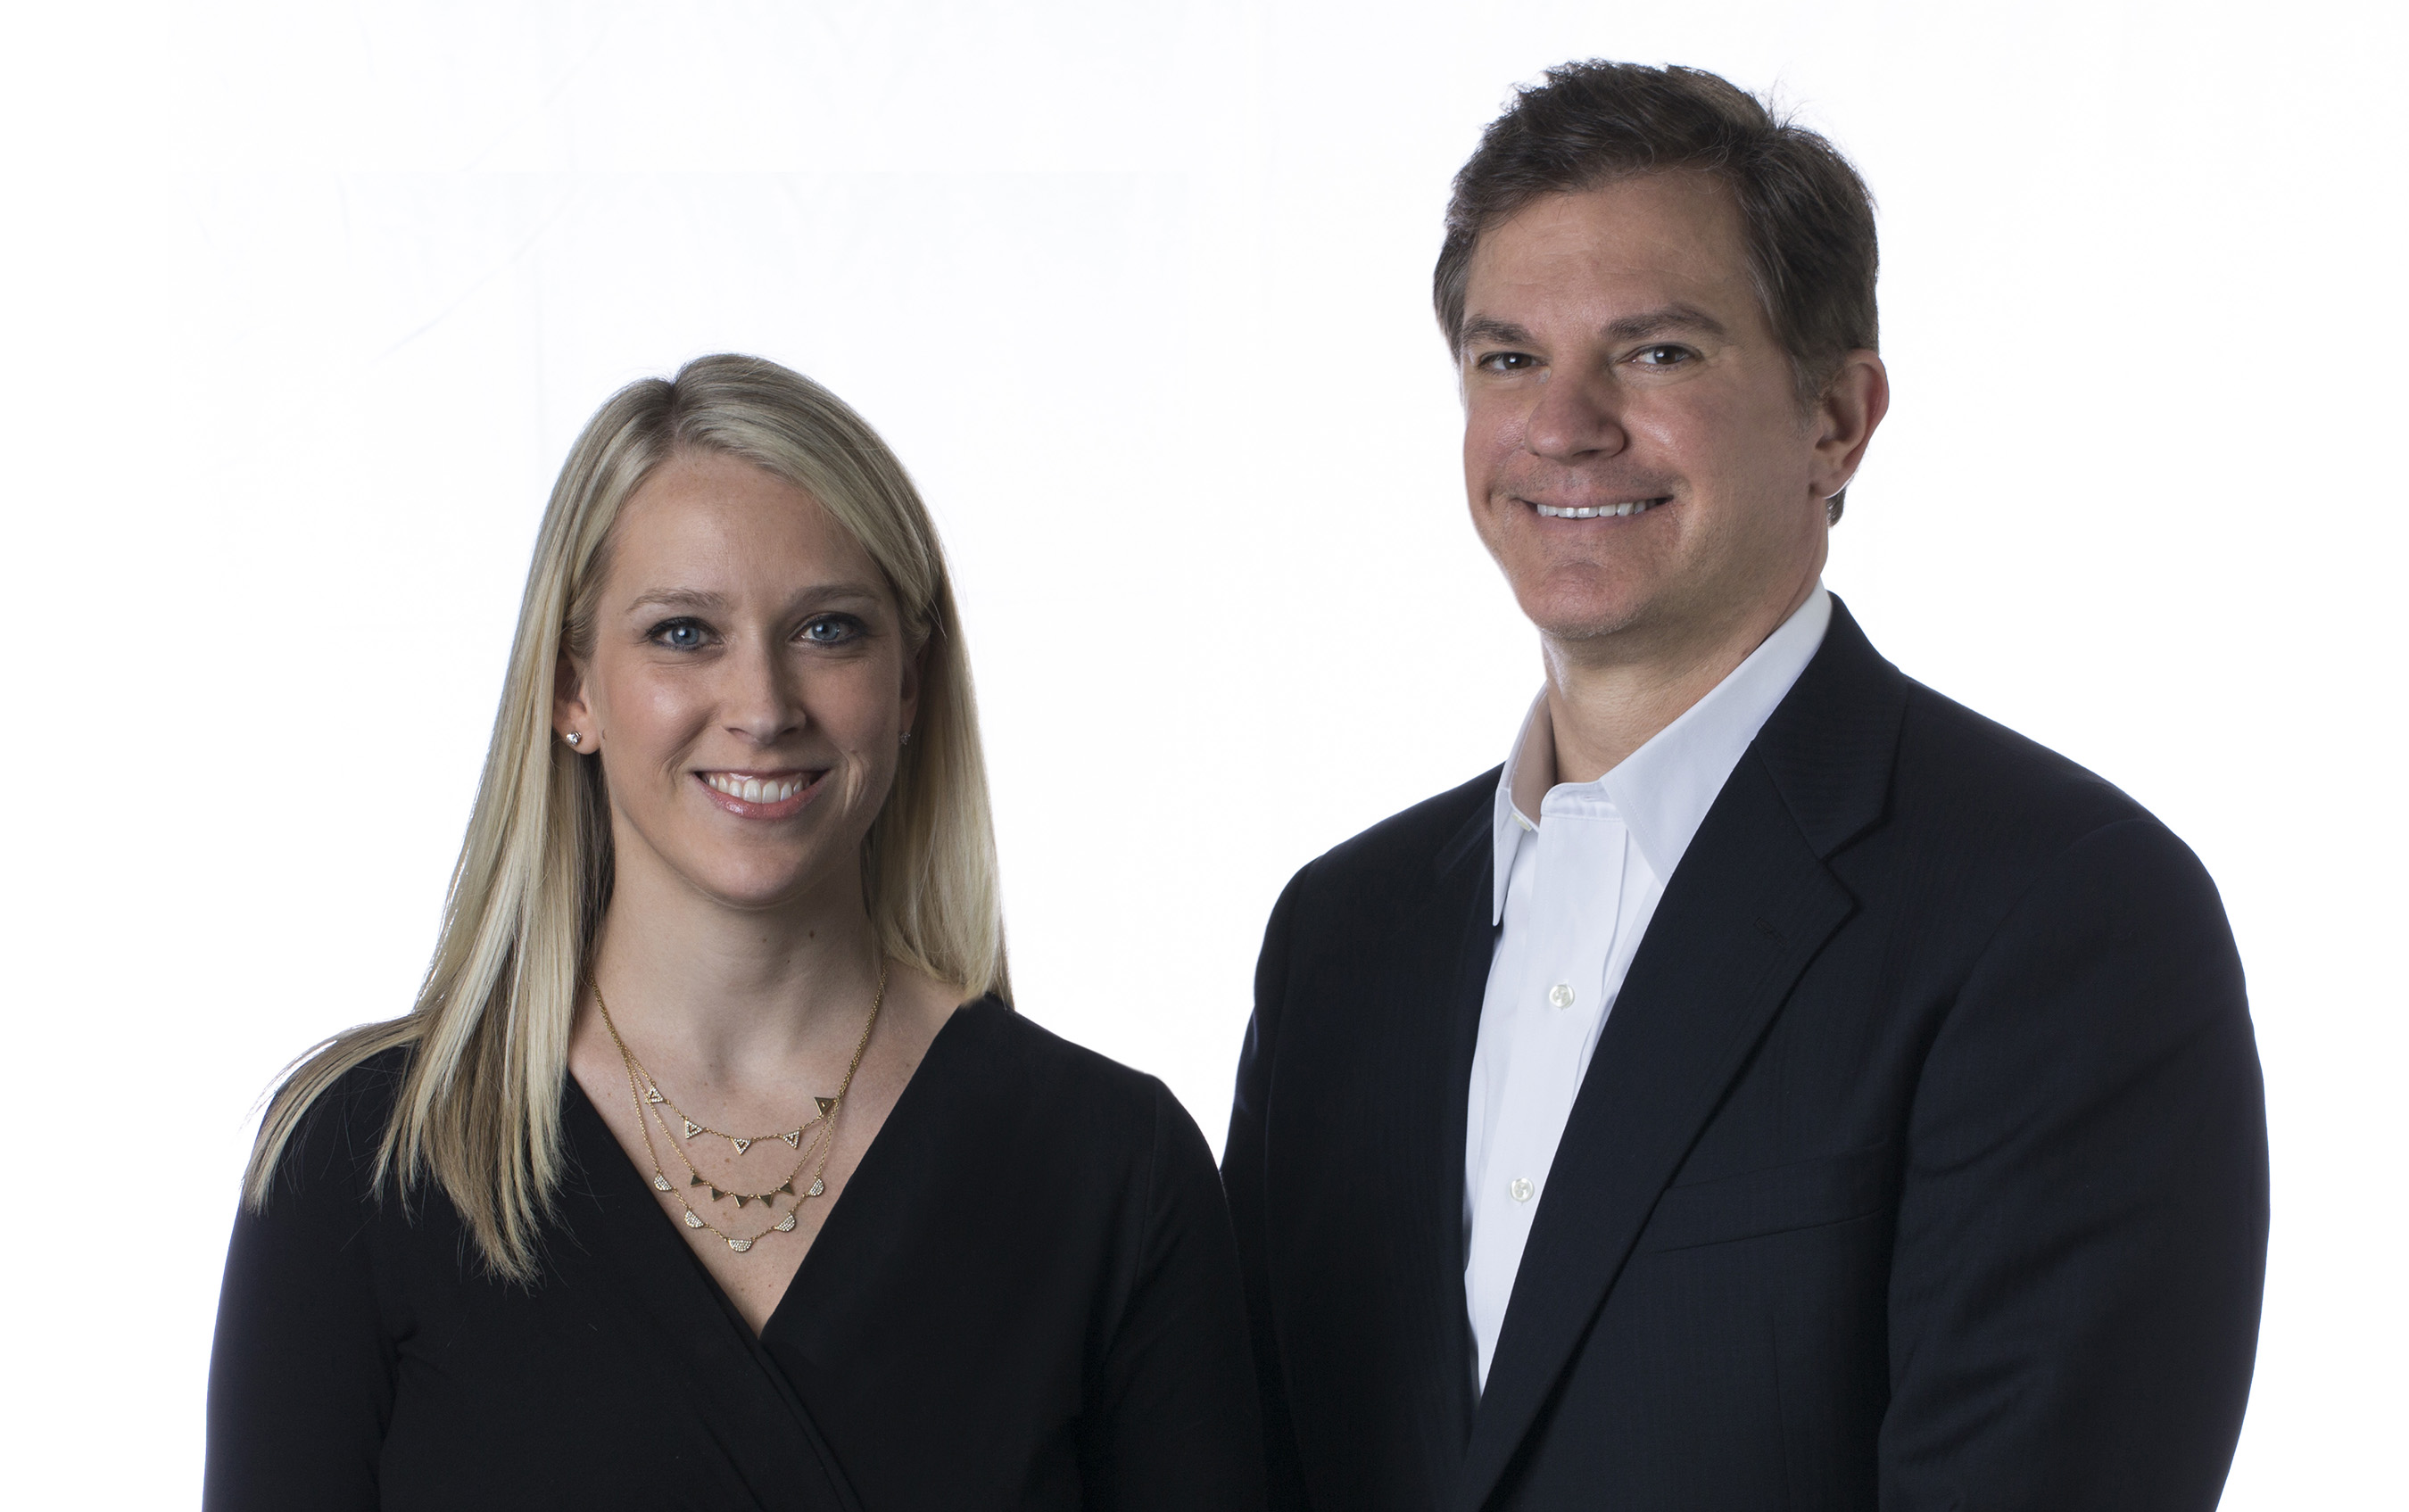 Gatesman CEO John Gatesman and President Shannon Baker led the company's acquisition of Noble Communications and growth into Chicago and Springfield.